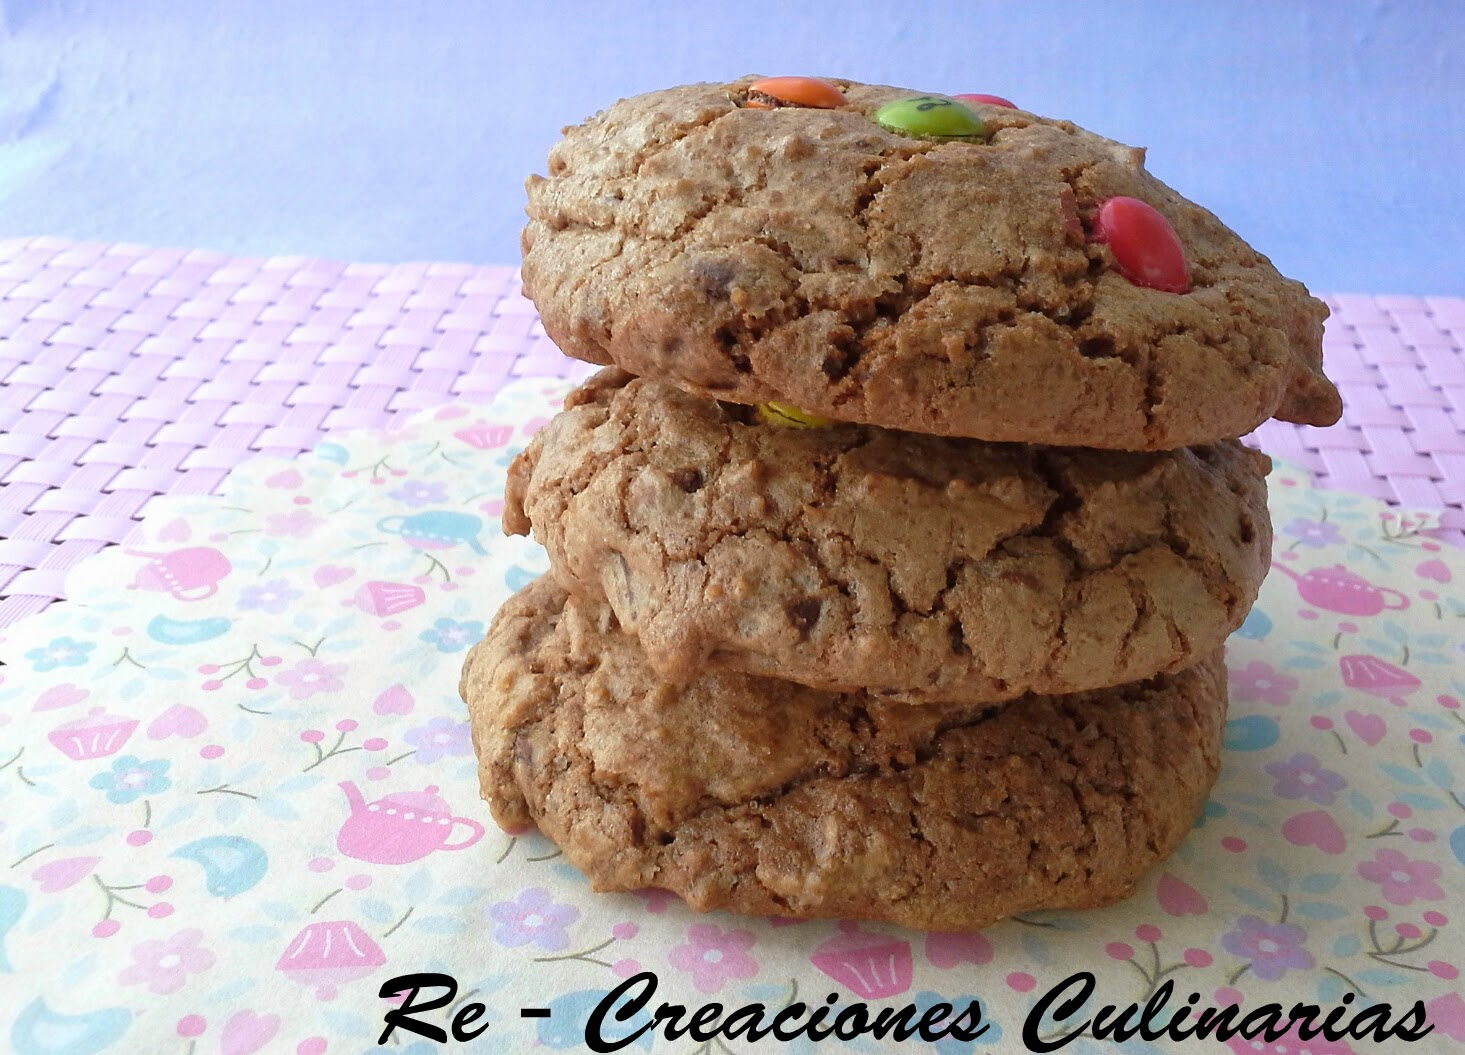 http://www.recreacionesculinarias.com/2014/03/cookies-con-chips-de-chocolate.html